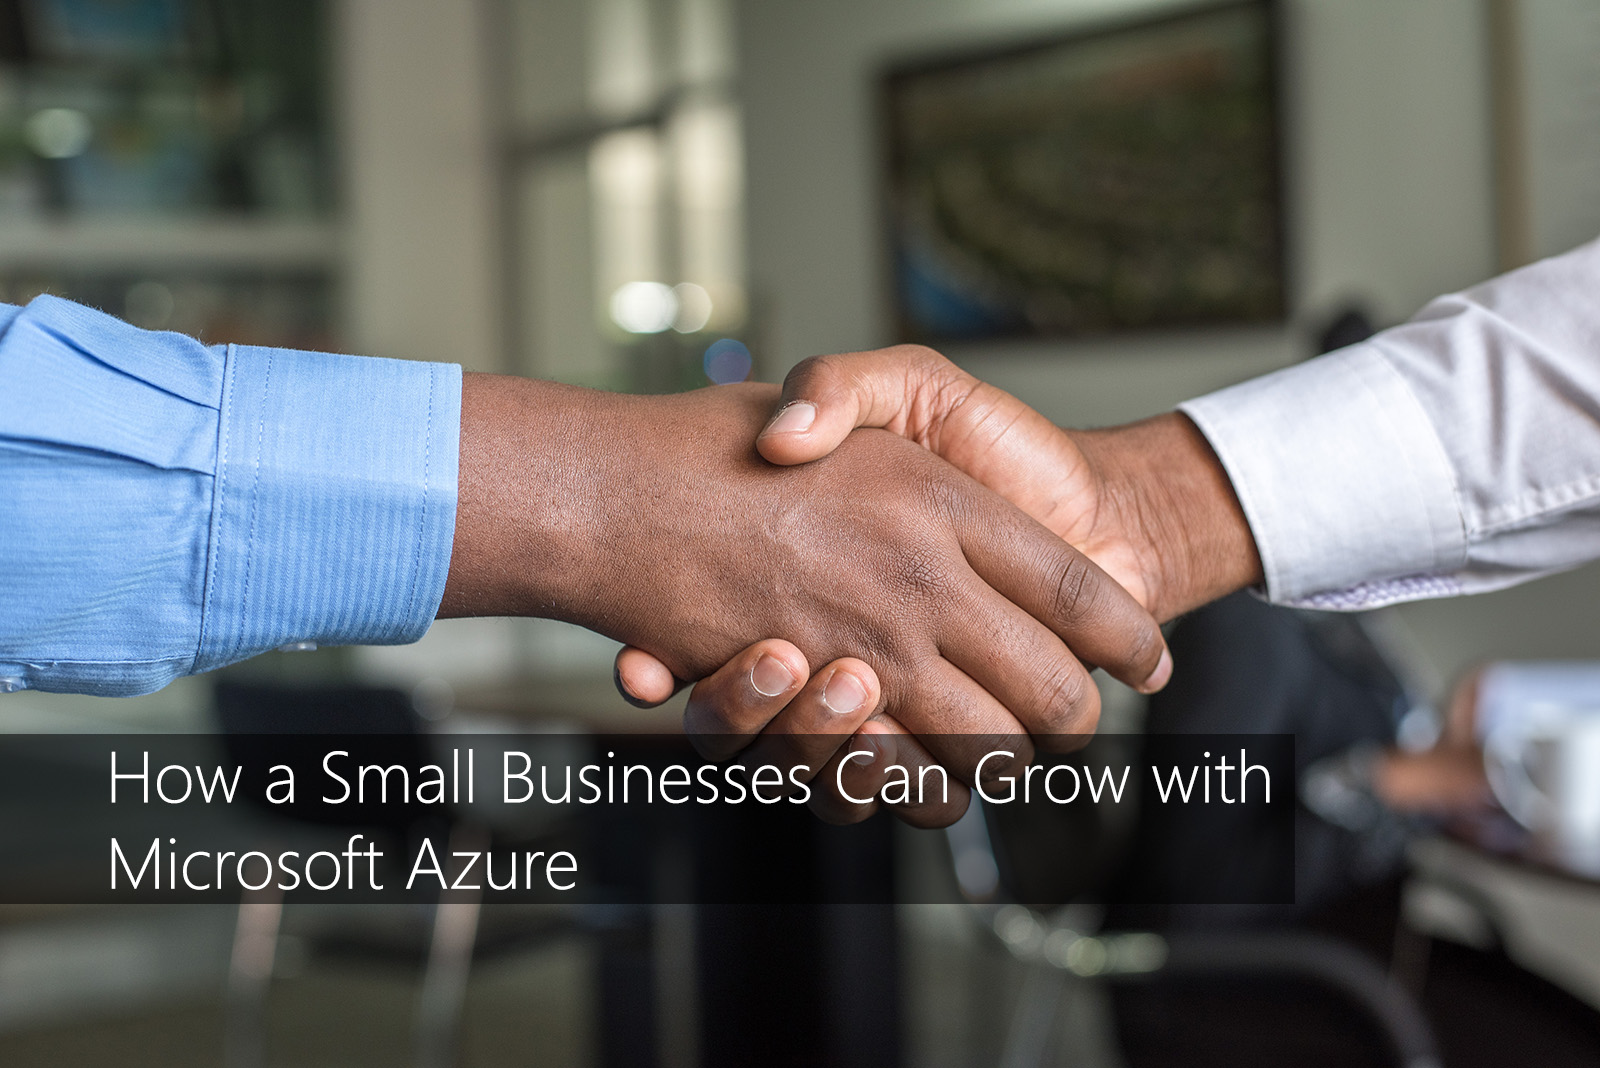 How a Small Businesses Can Grow with Microsoft Azure